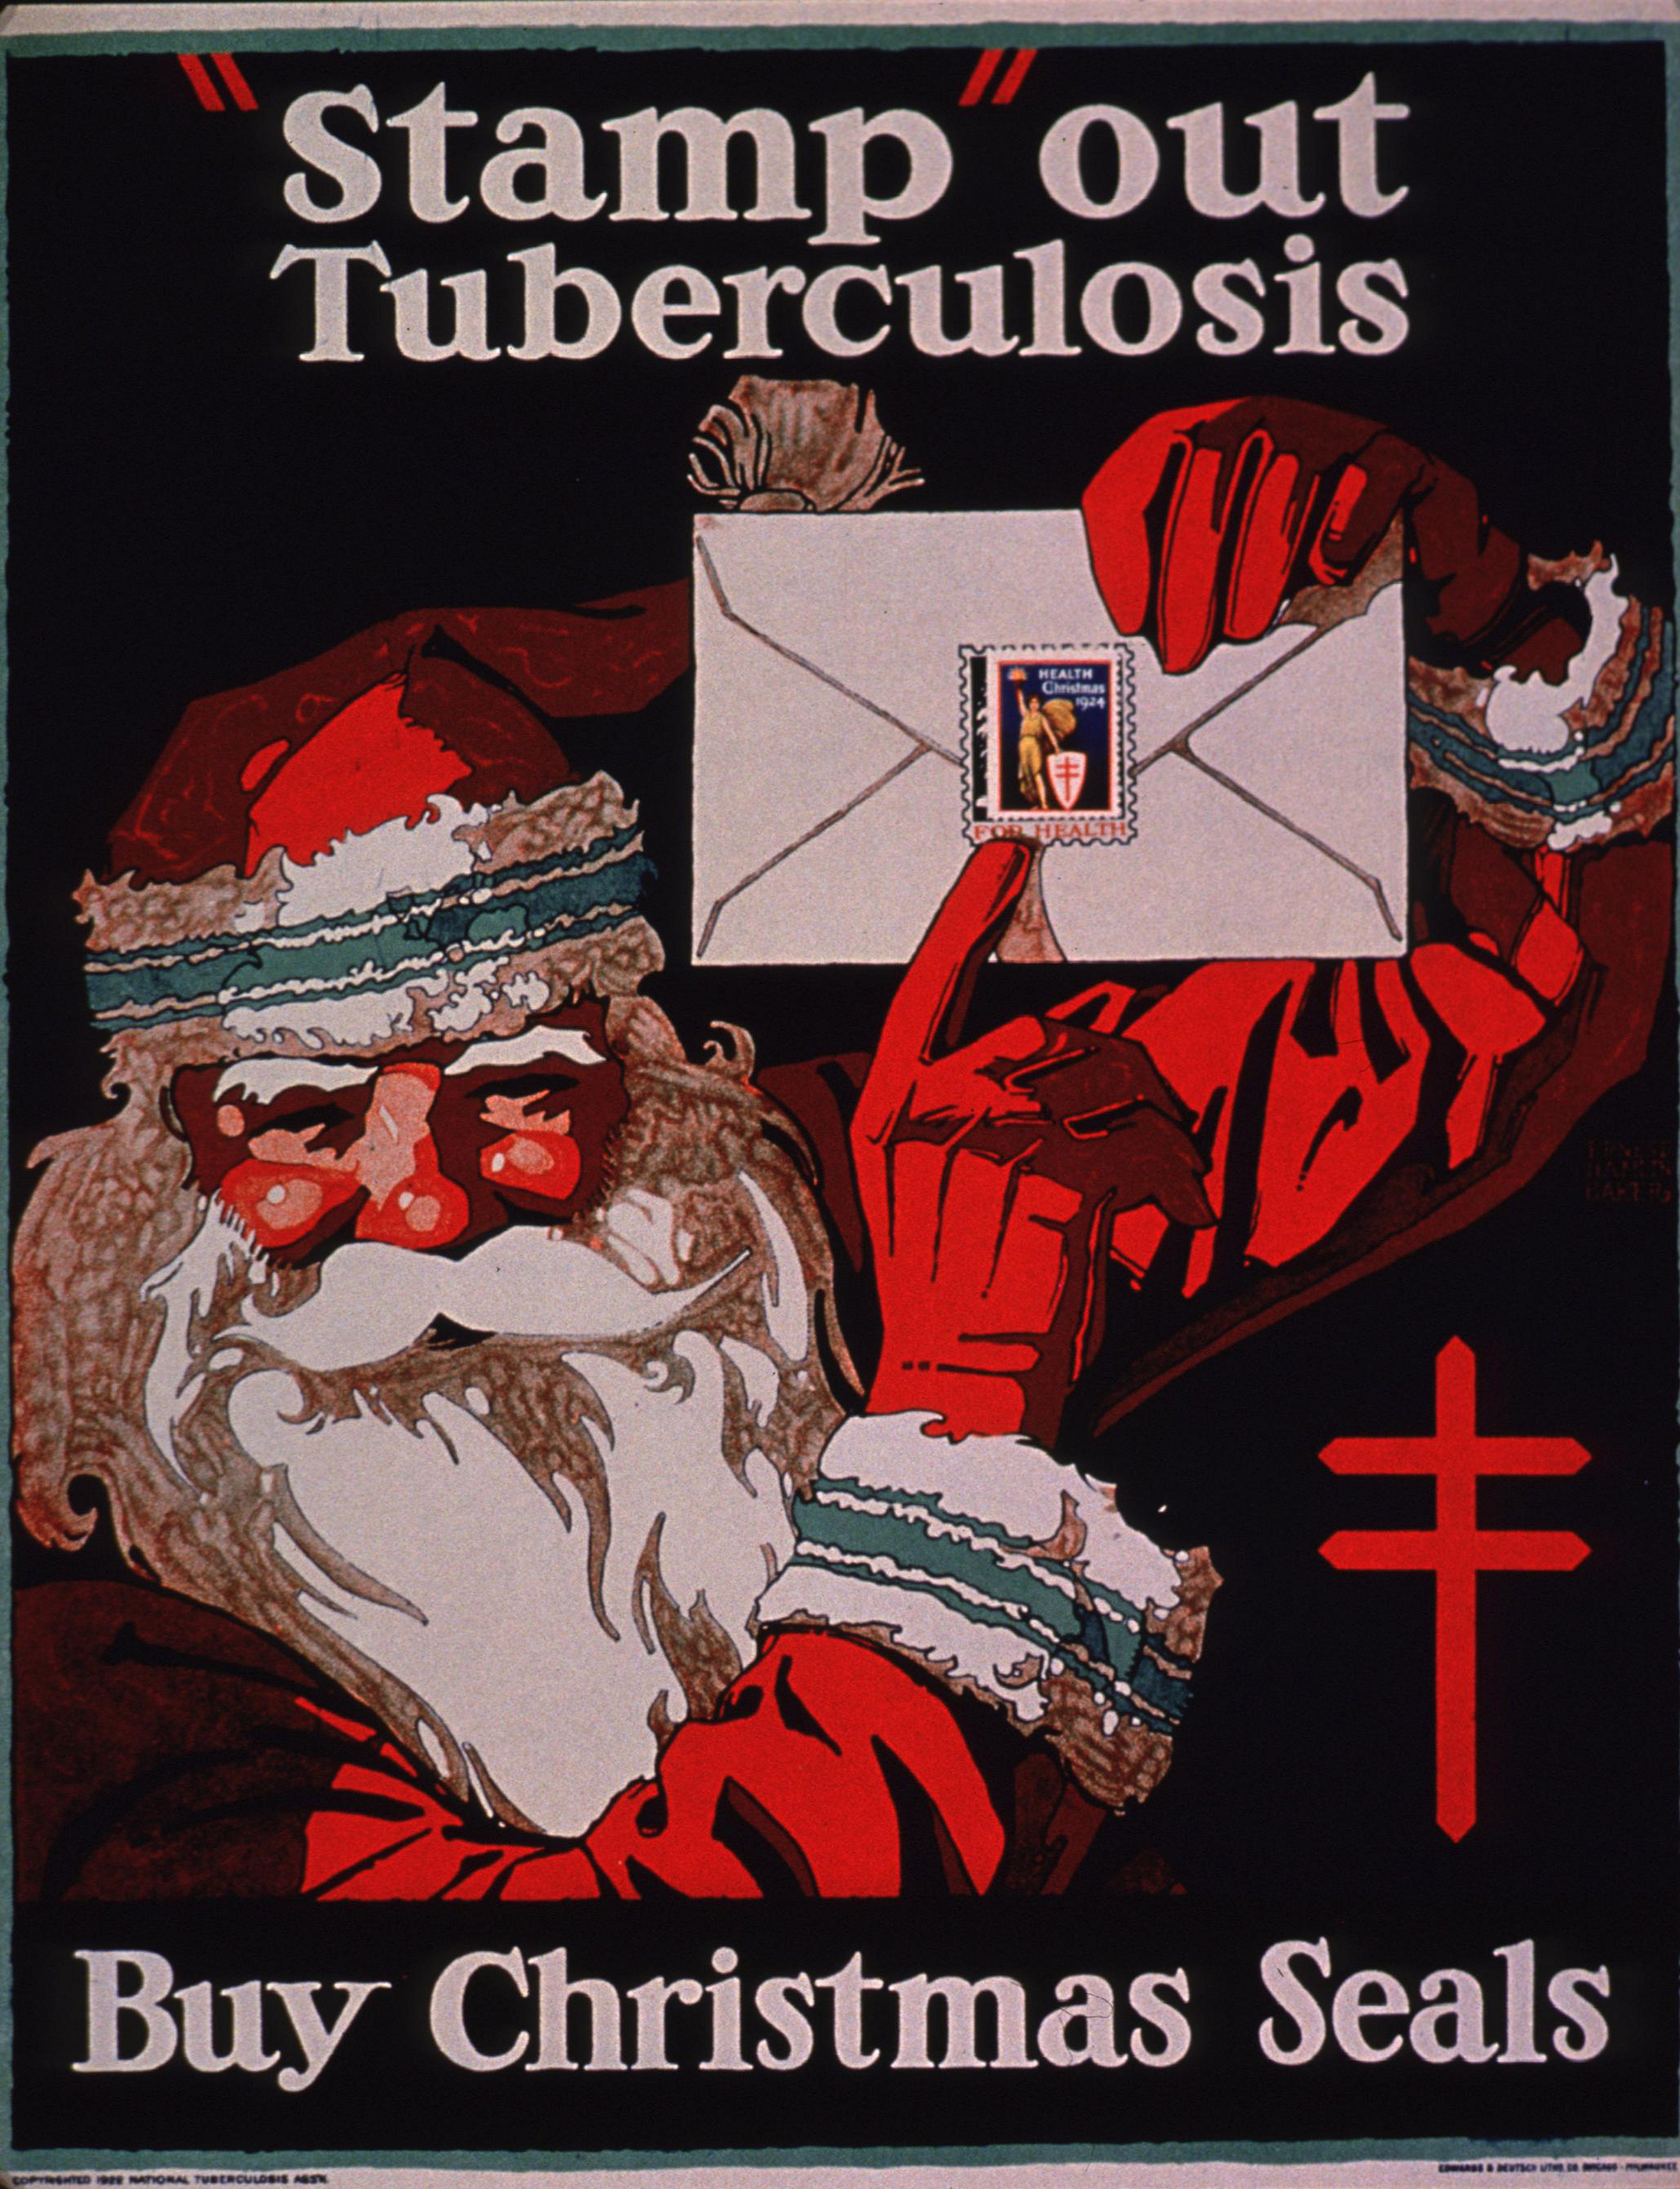 A 1924 National Tuberculosis Association poster of Santa Claus encouraging people to buy Christmas seals.